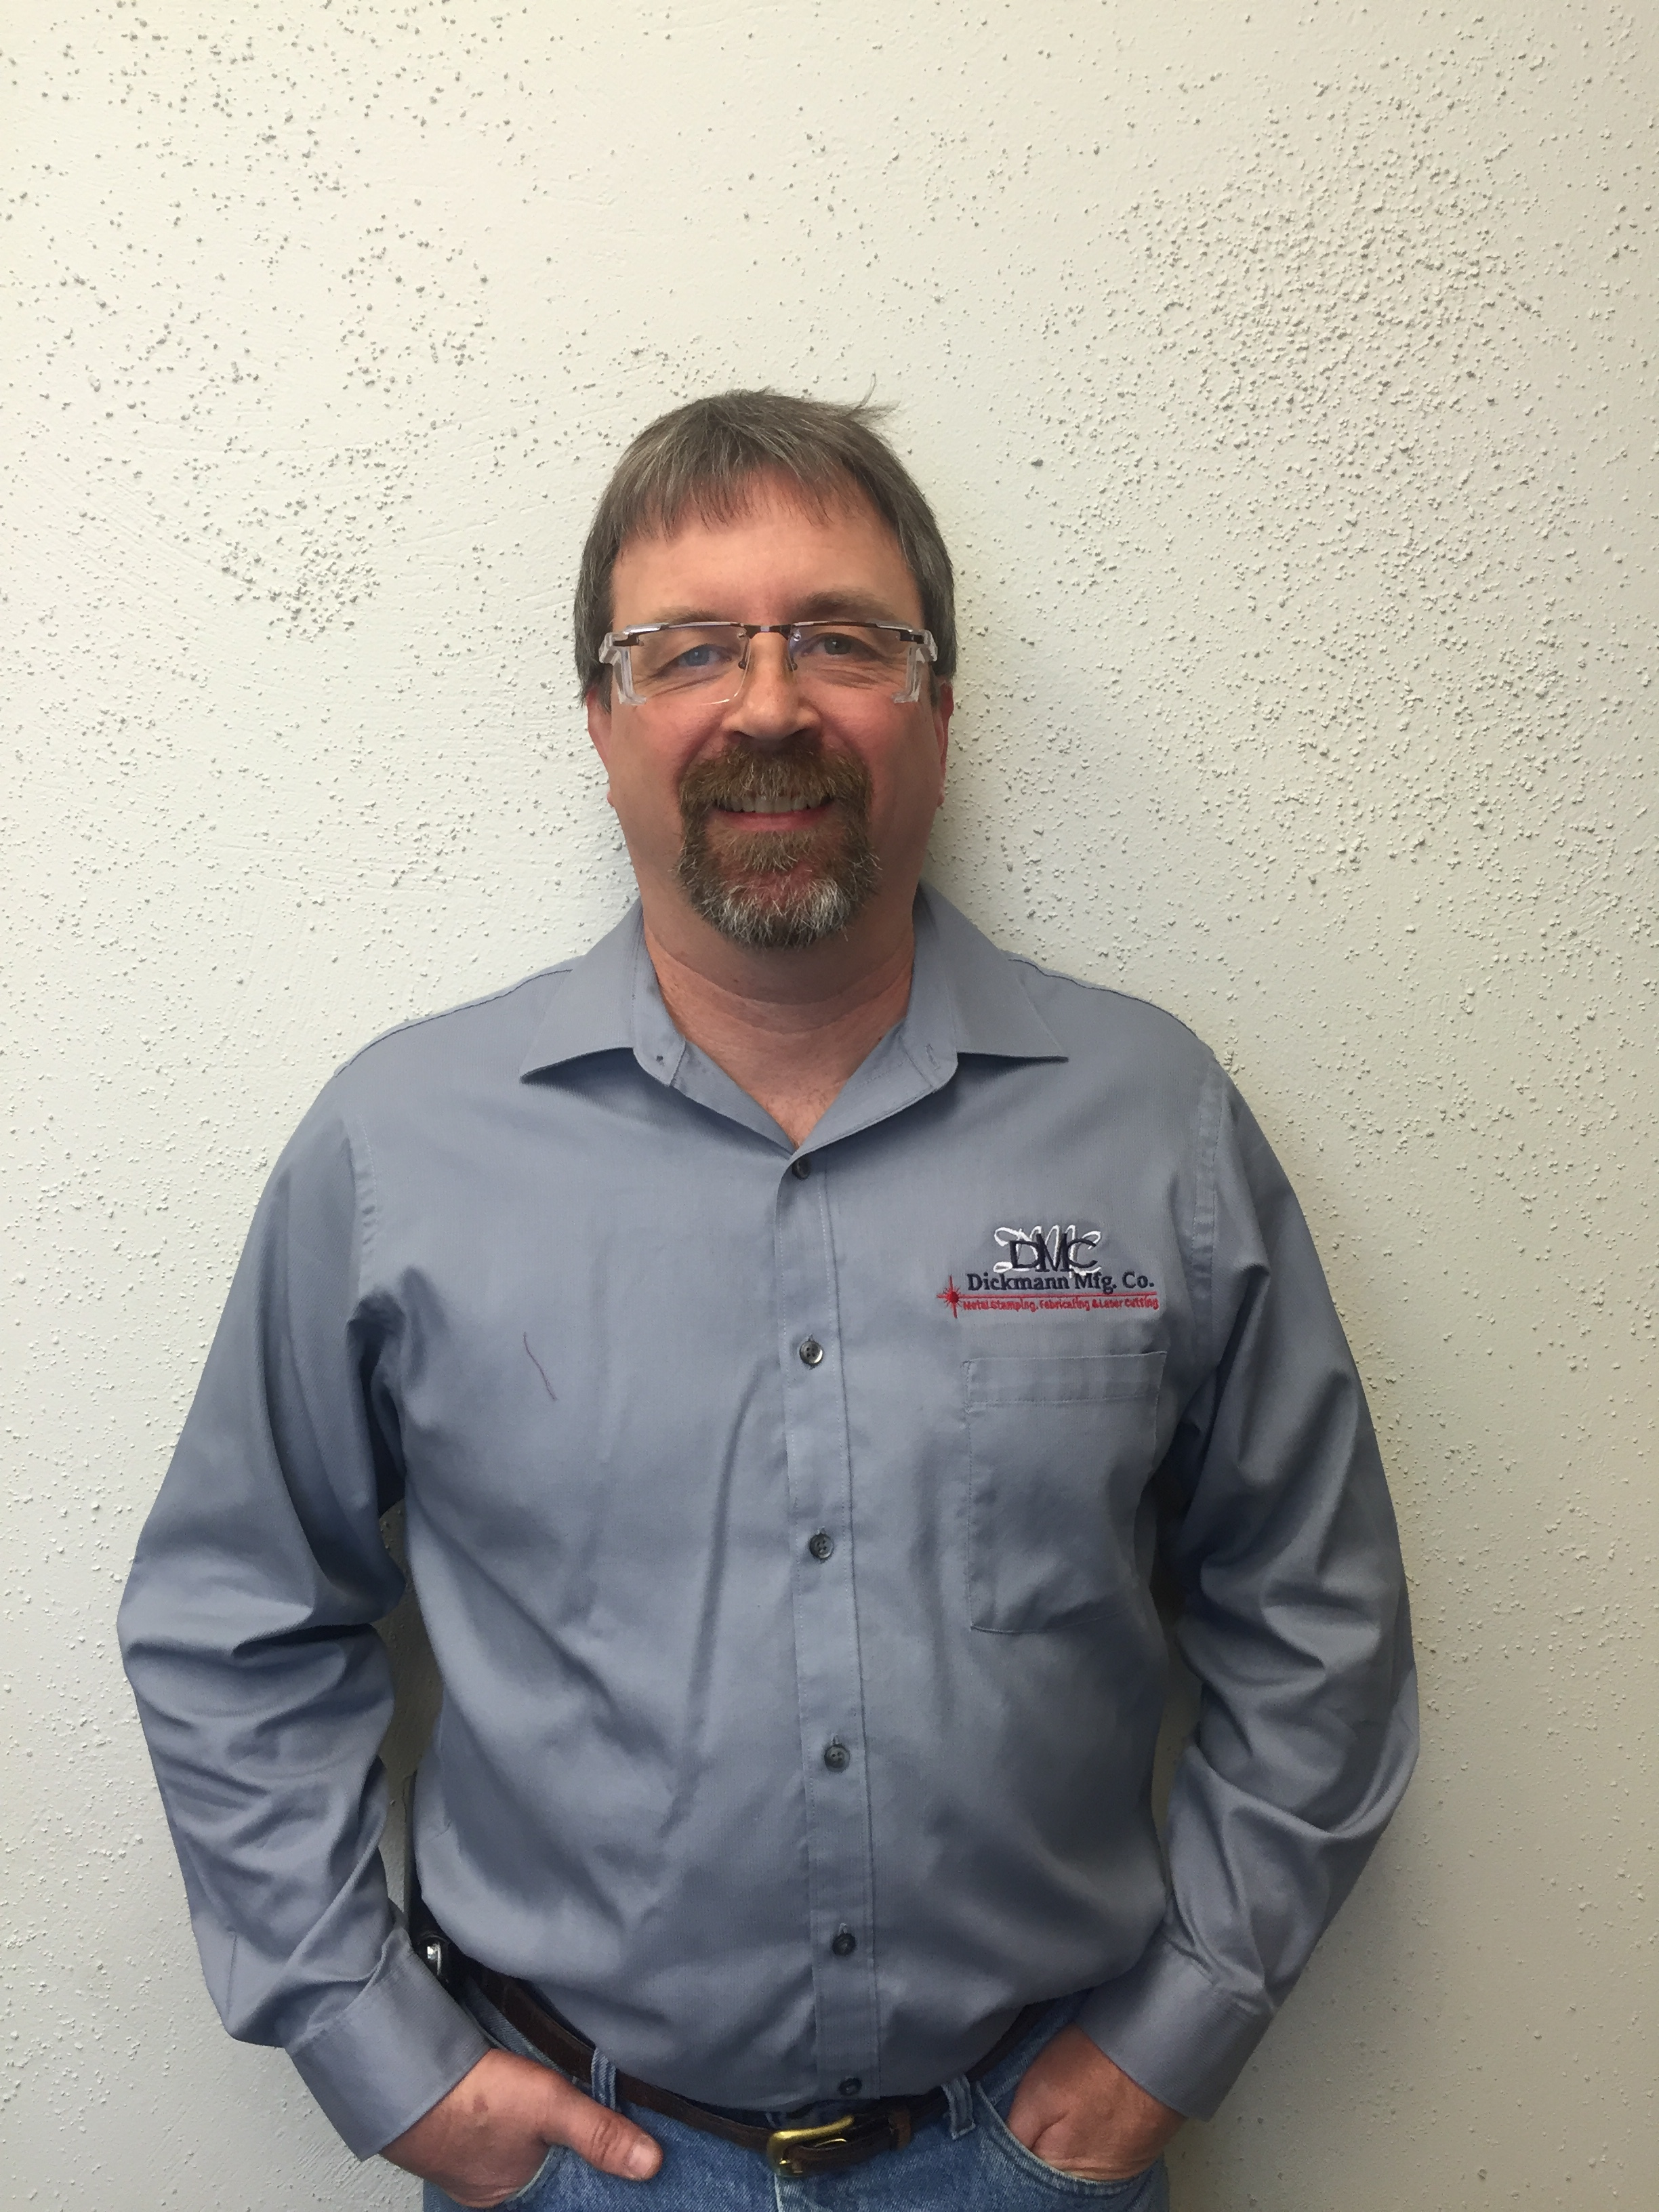 Mark is the President of Operations at Dickmann